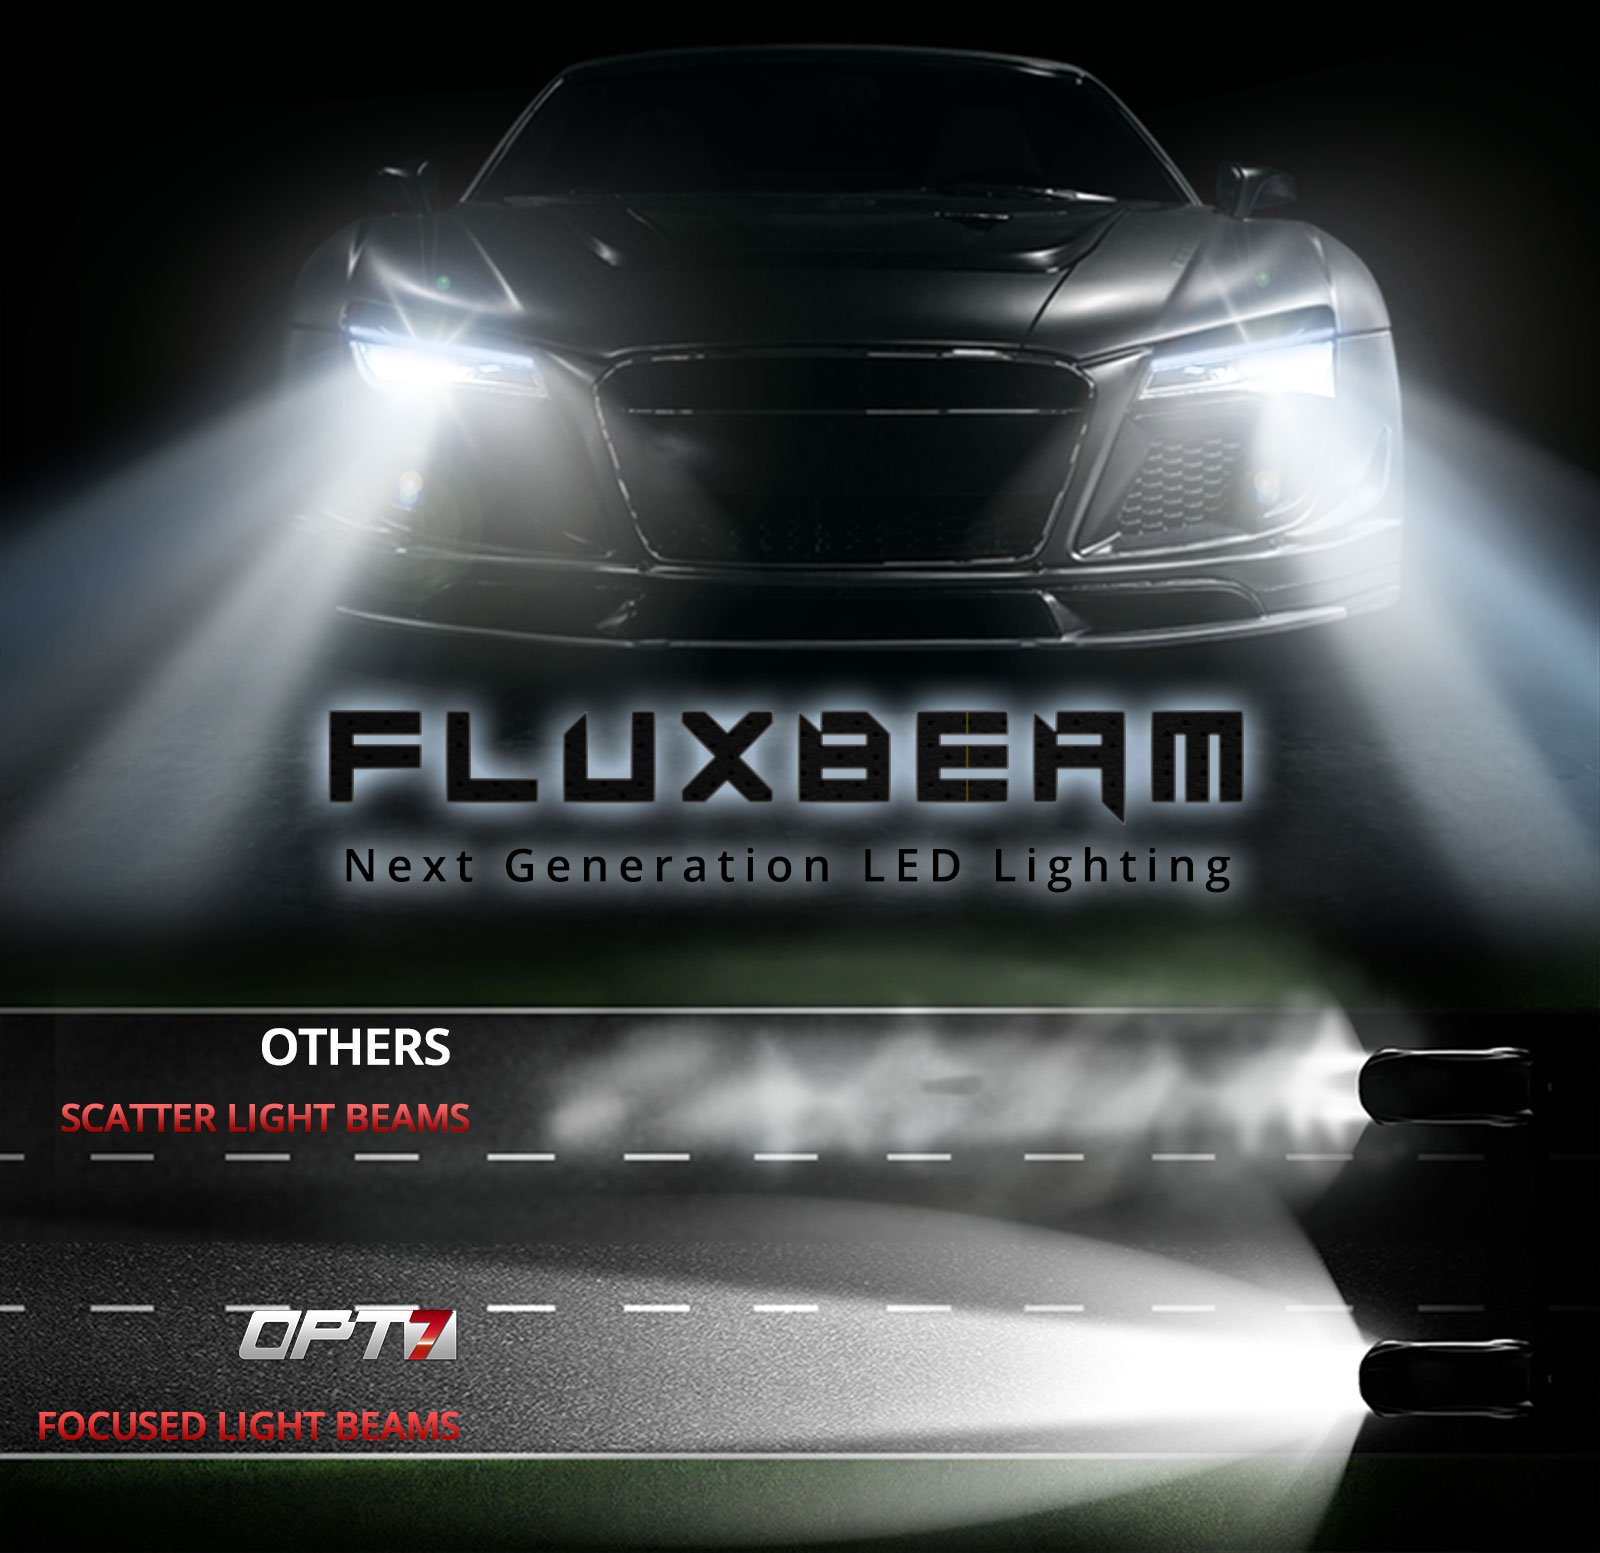 OPT7 Fluxbeam 9007 LED Headlight Bulbs w/TIPM Resistors Kit - 80w 7,000Lm 6K Cool White CREE - 2 Yr Warranty - for Dodge, RAM, Jeep, Chrysler by OPT7 (Image #2)